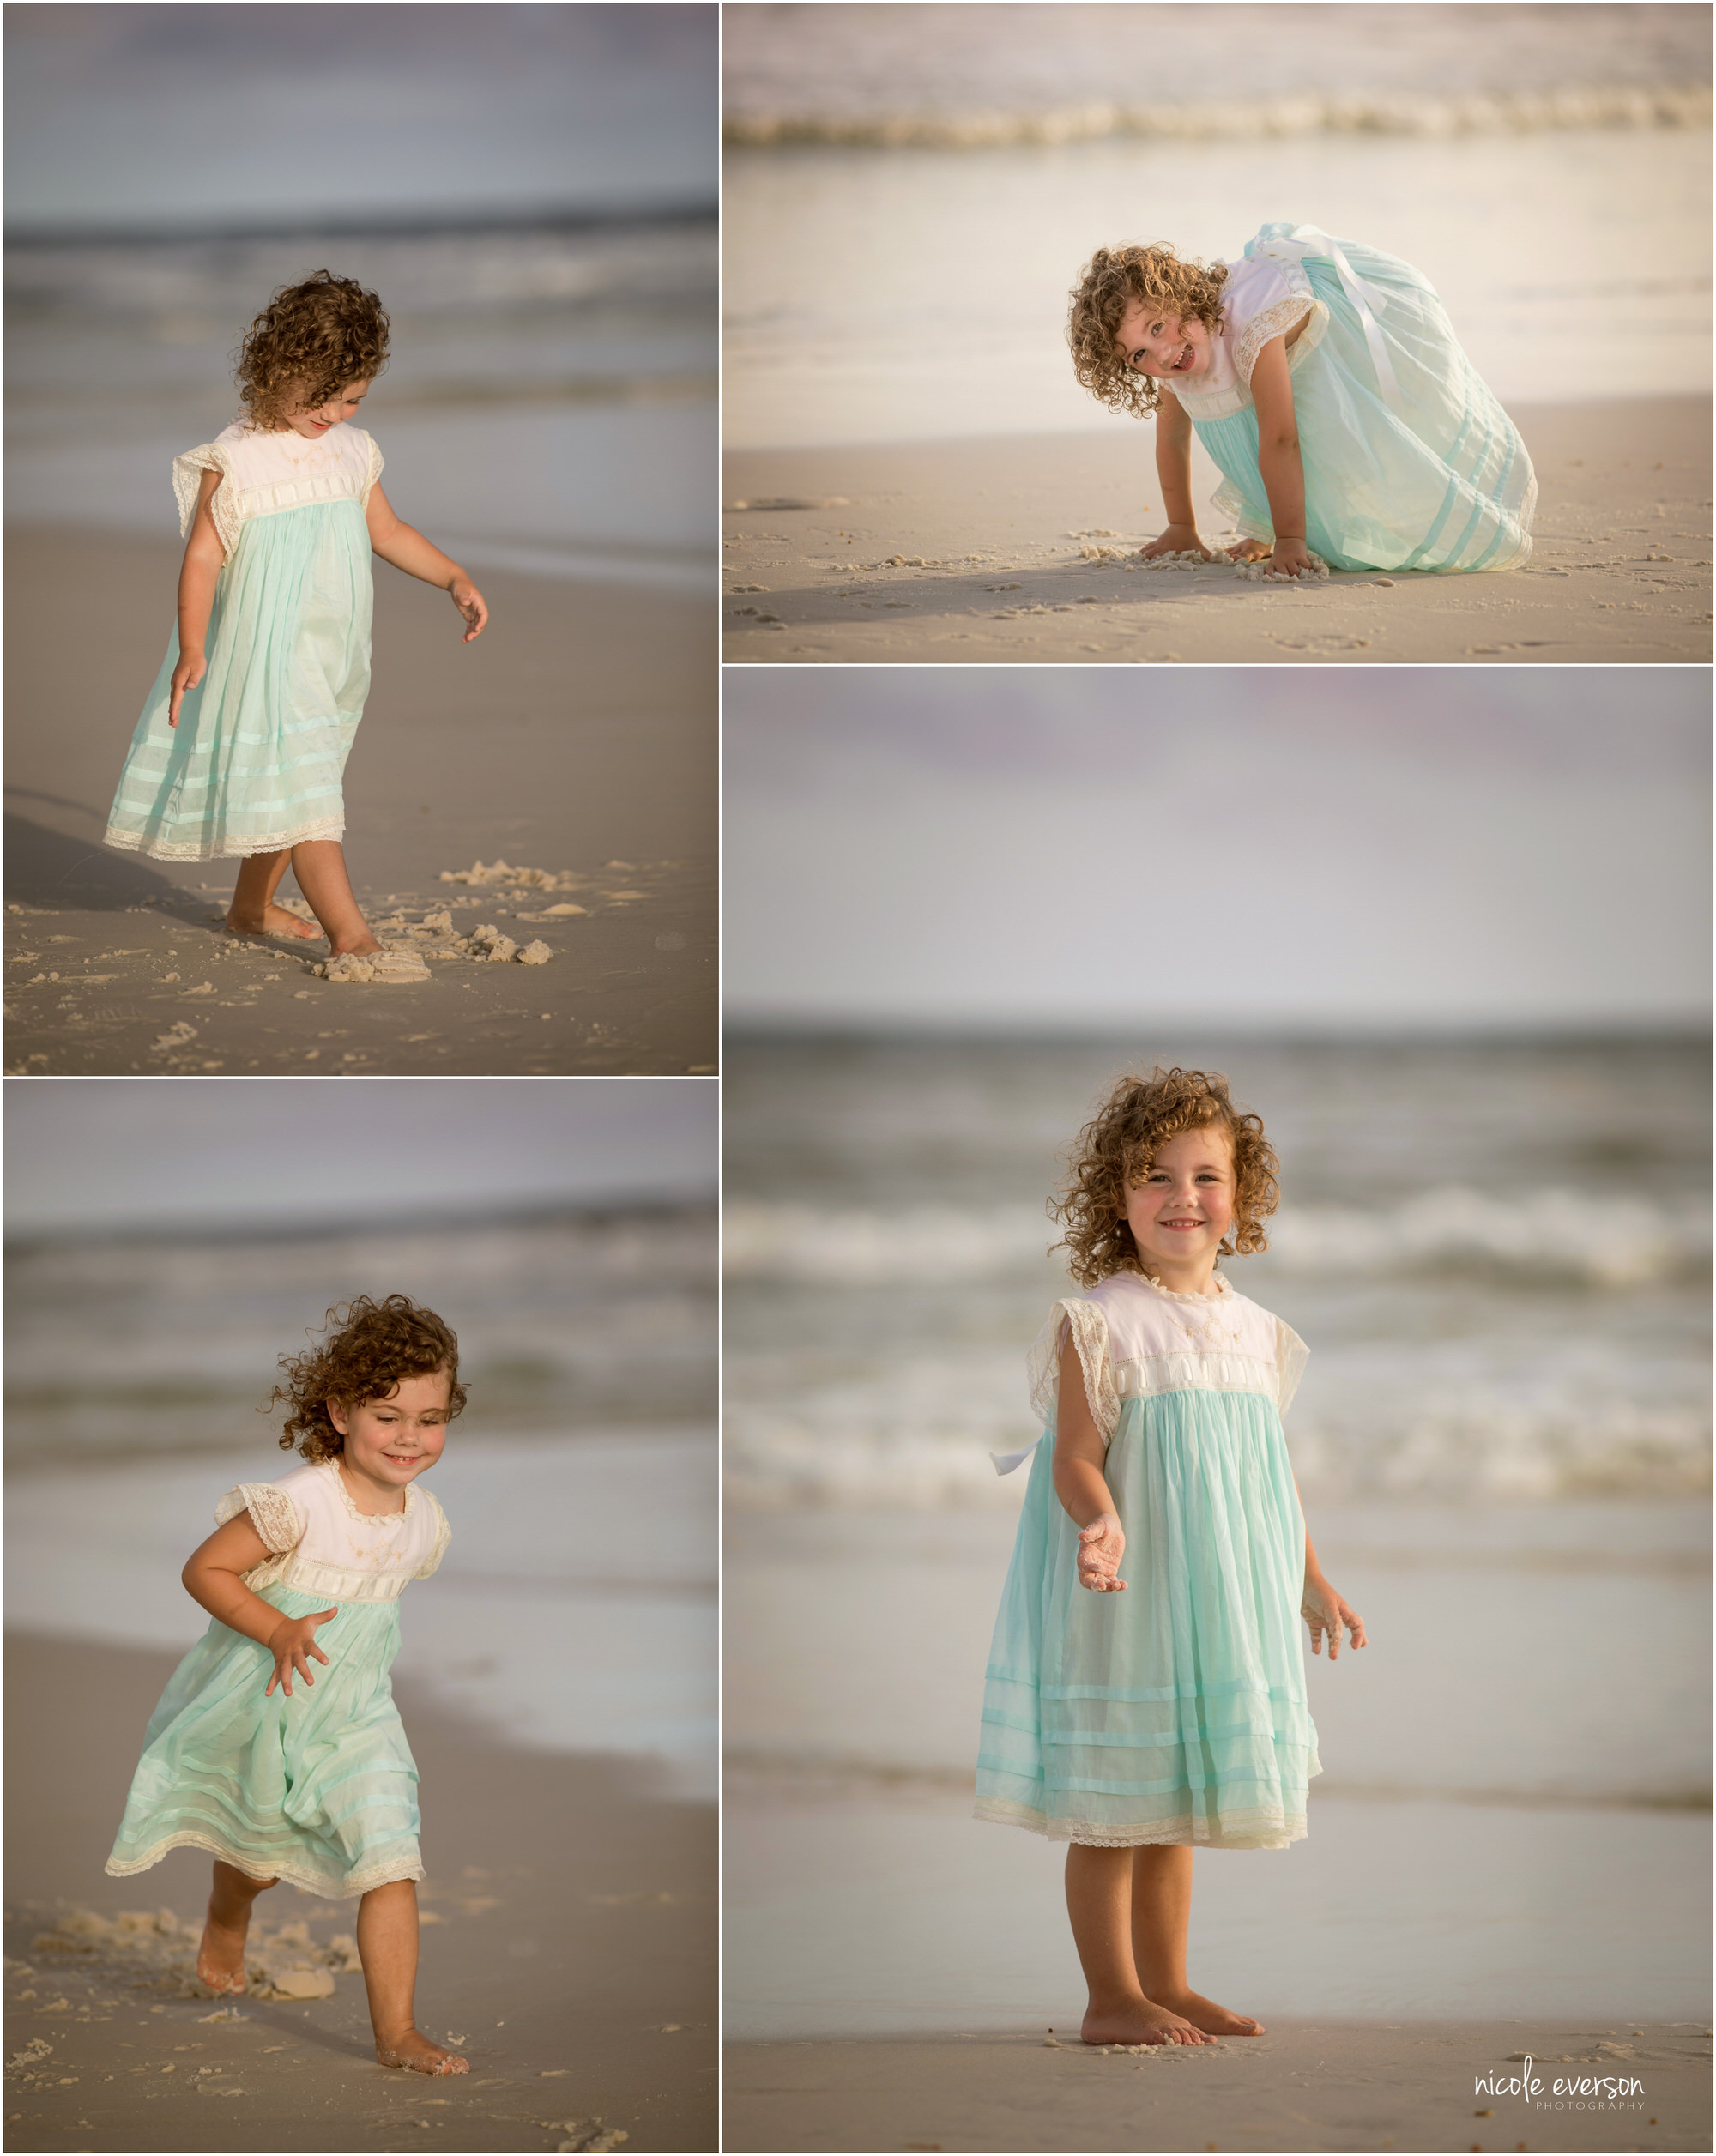 Smiling curly headed little girl at Watercolor Inn Beach. Nicole Everson, Watercolor Inn Beach Family Photographer.